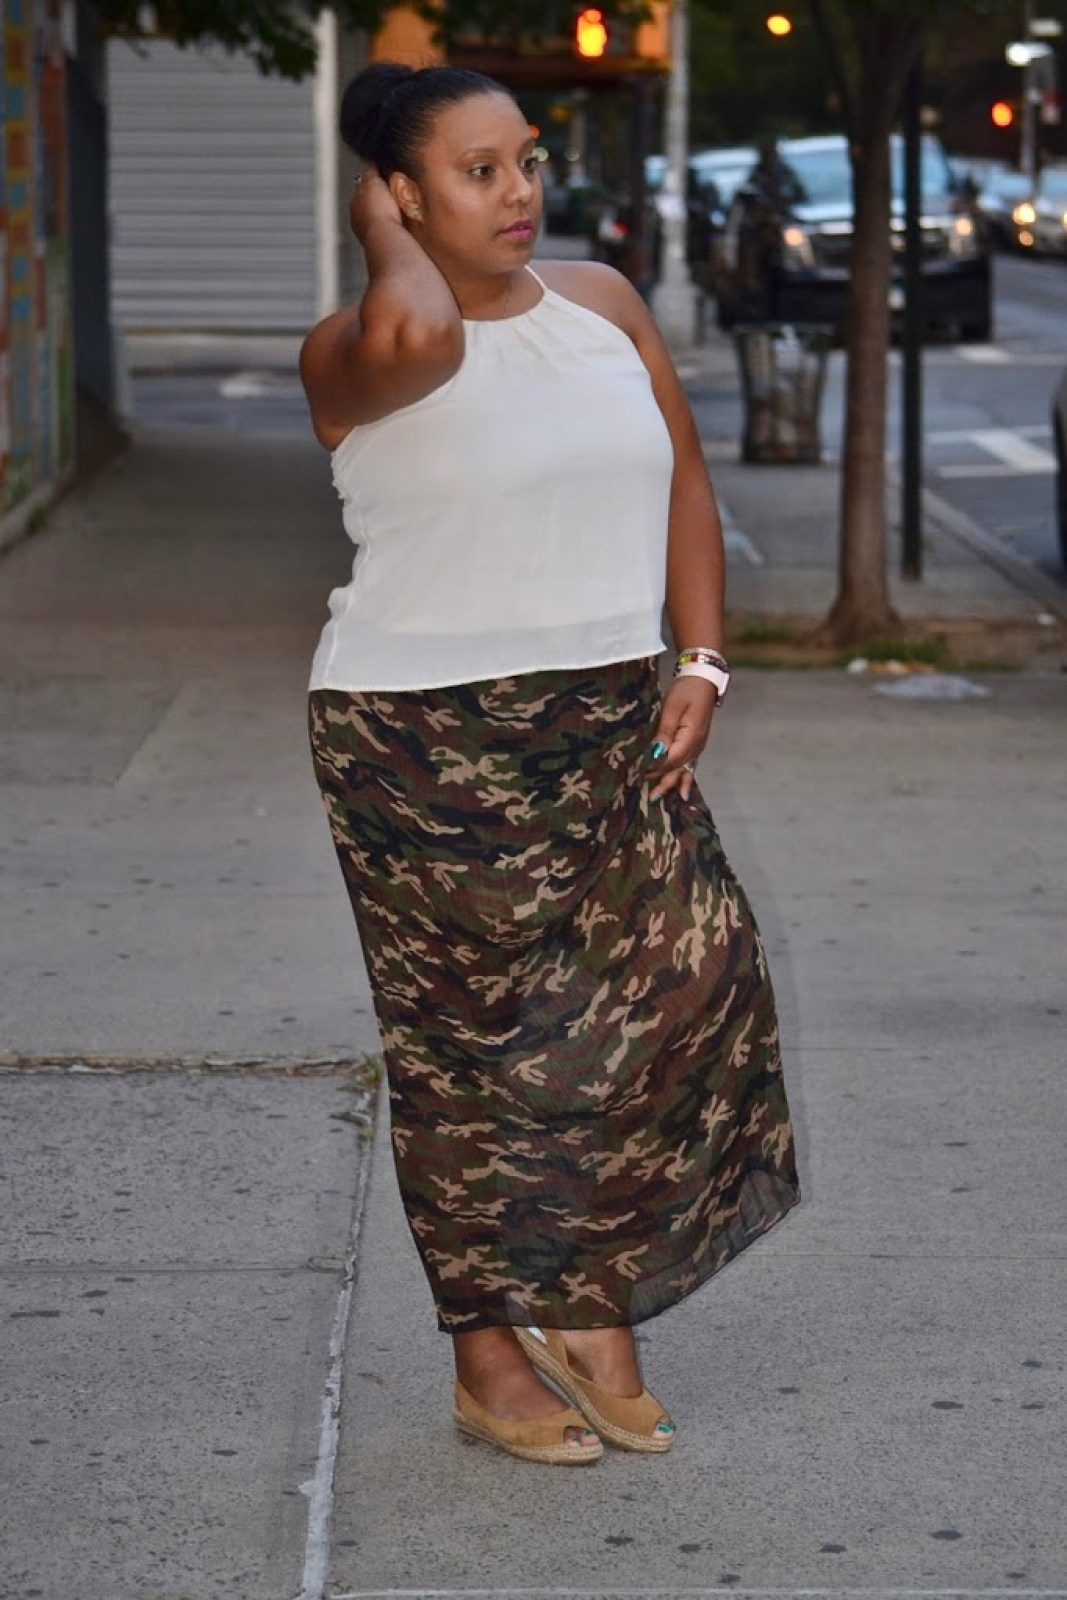 THE PERFECT CAMO SKIRT